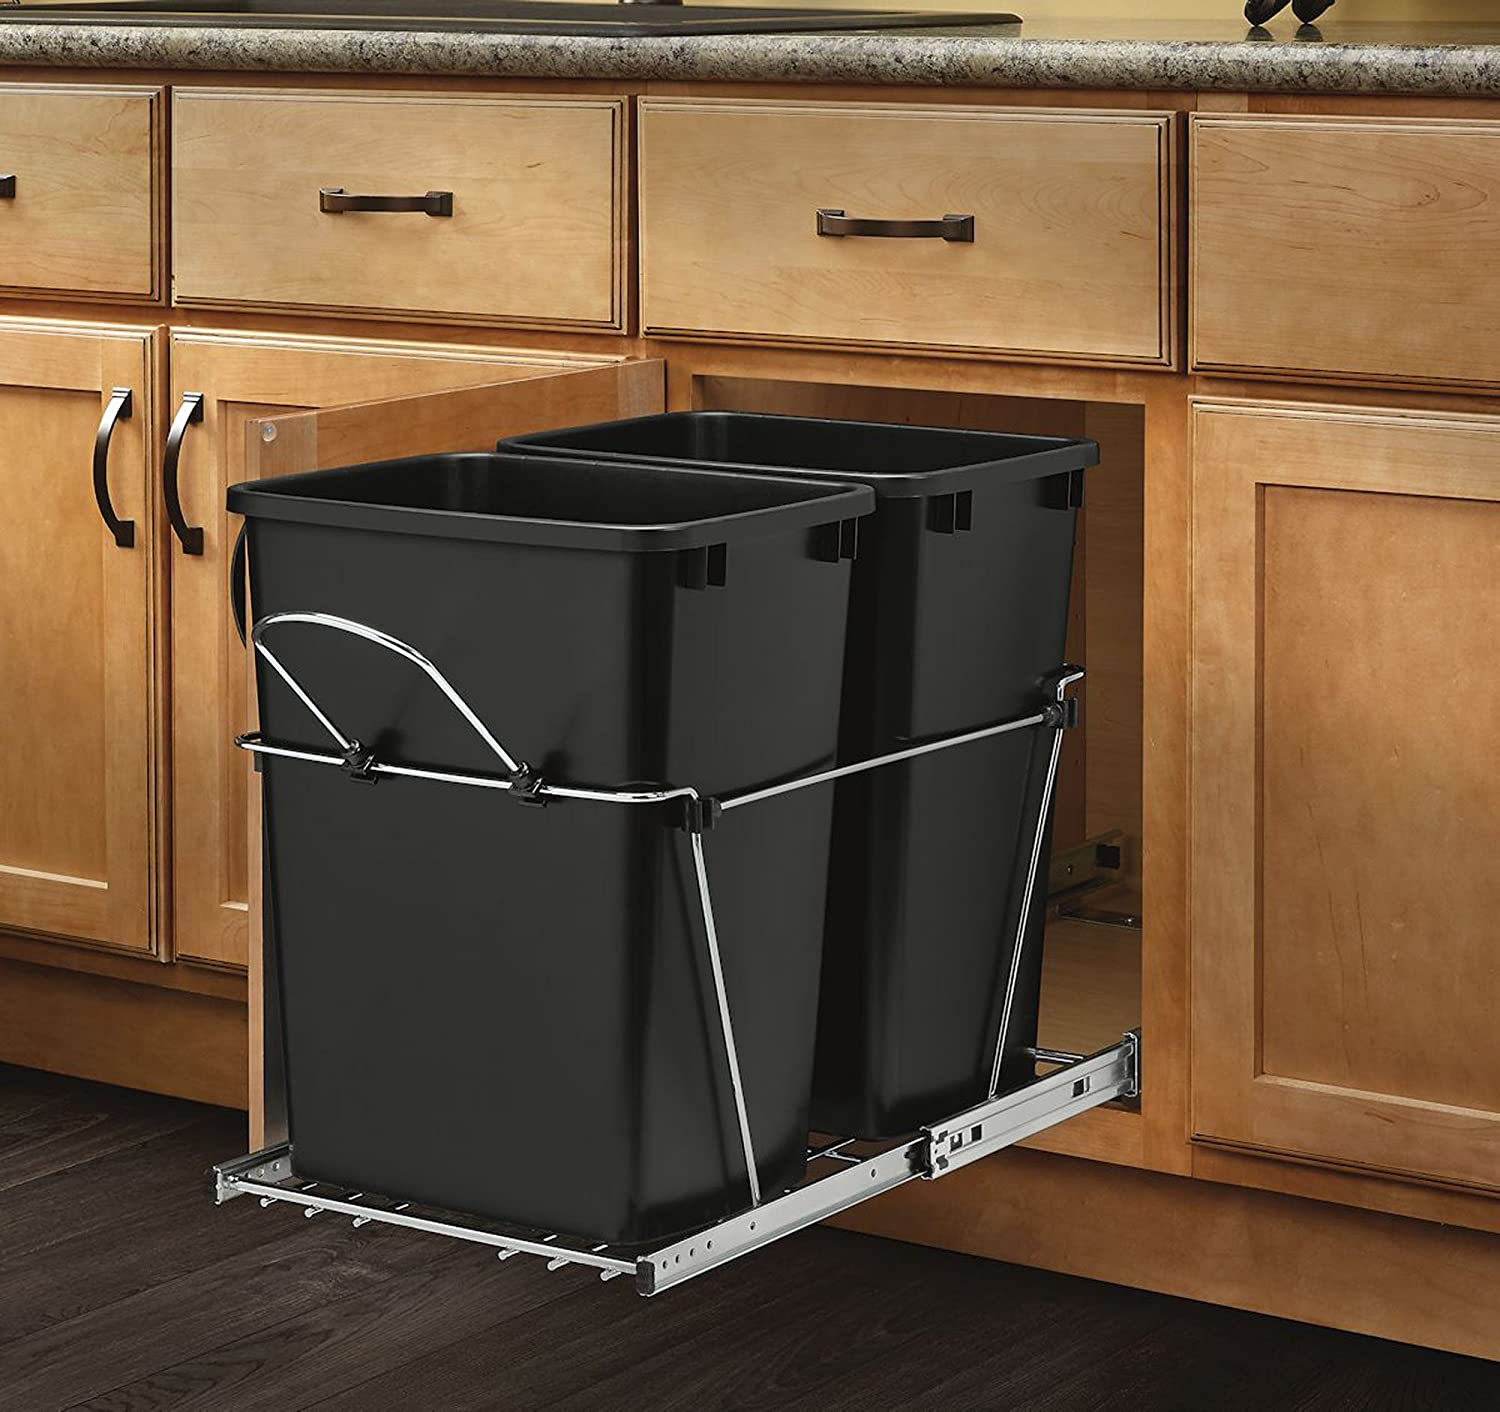 Kitchen Garbage Can Cabinet: 35QT Under Cabinet Pull Out Trash Can 2 Bin Undersink